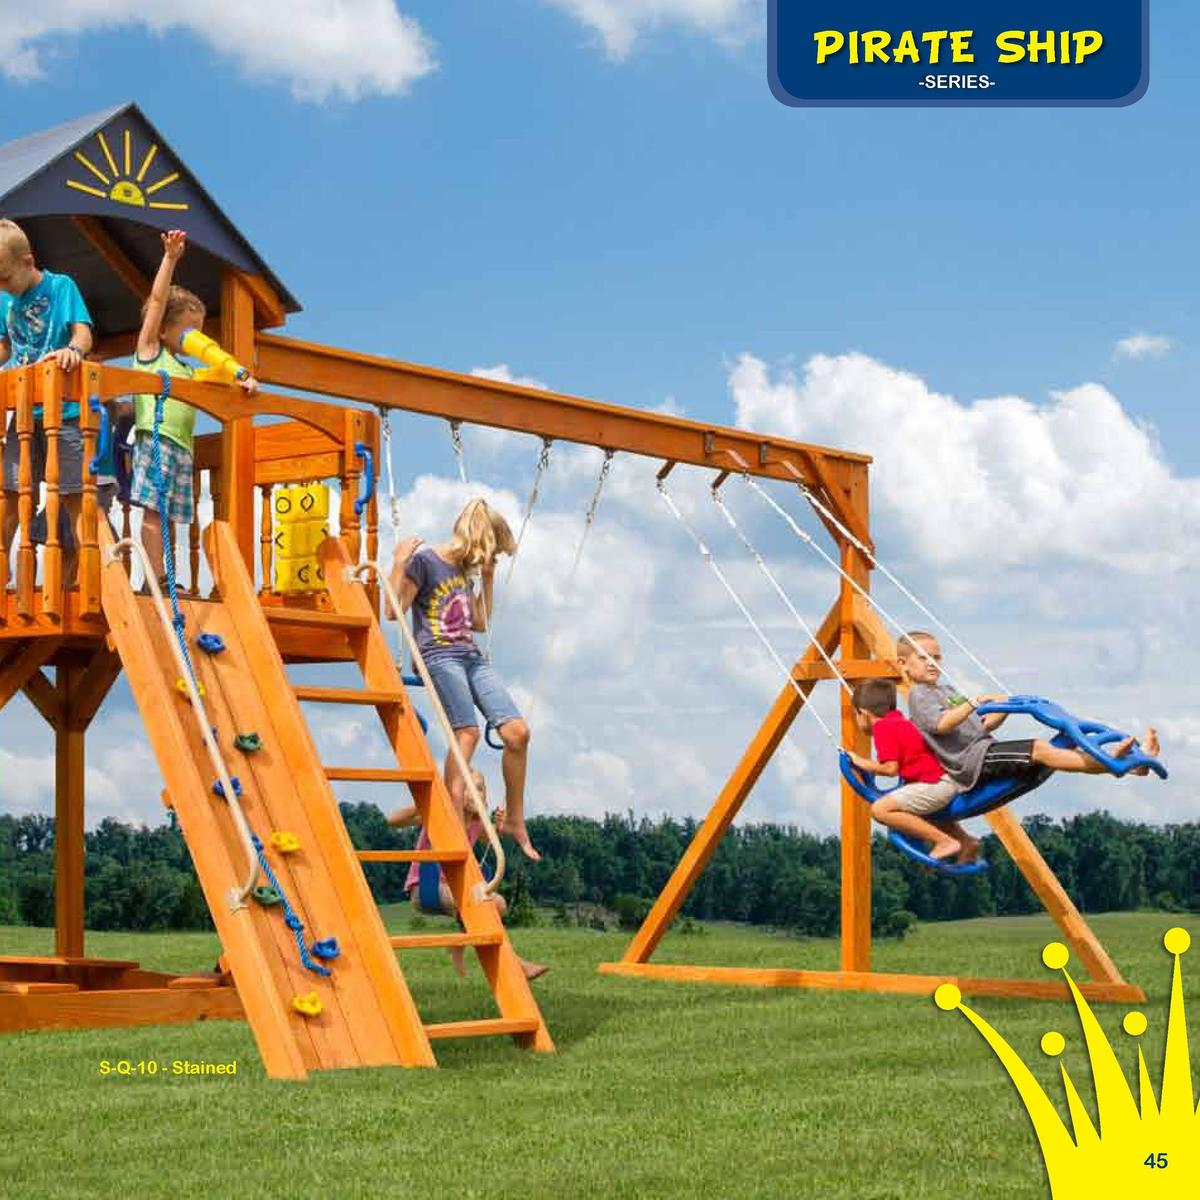 Play Deck Roofing Choices  The Starboard Escape  PIRATE SHIP -SERIES-  Fabric  Plastic  Clap Board  Border Needed   86   R...